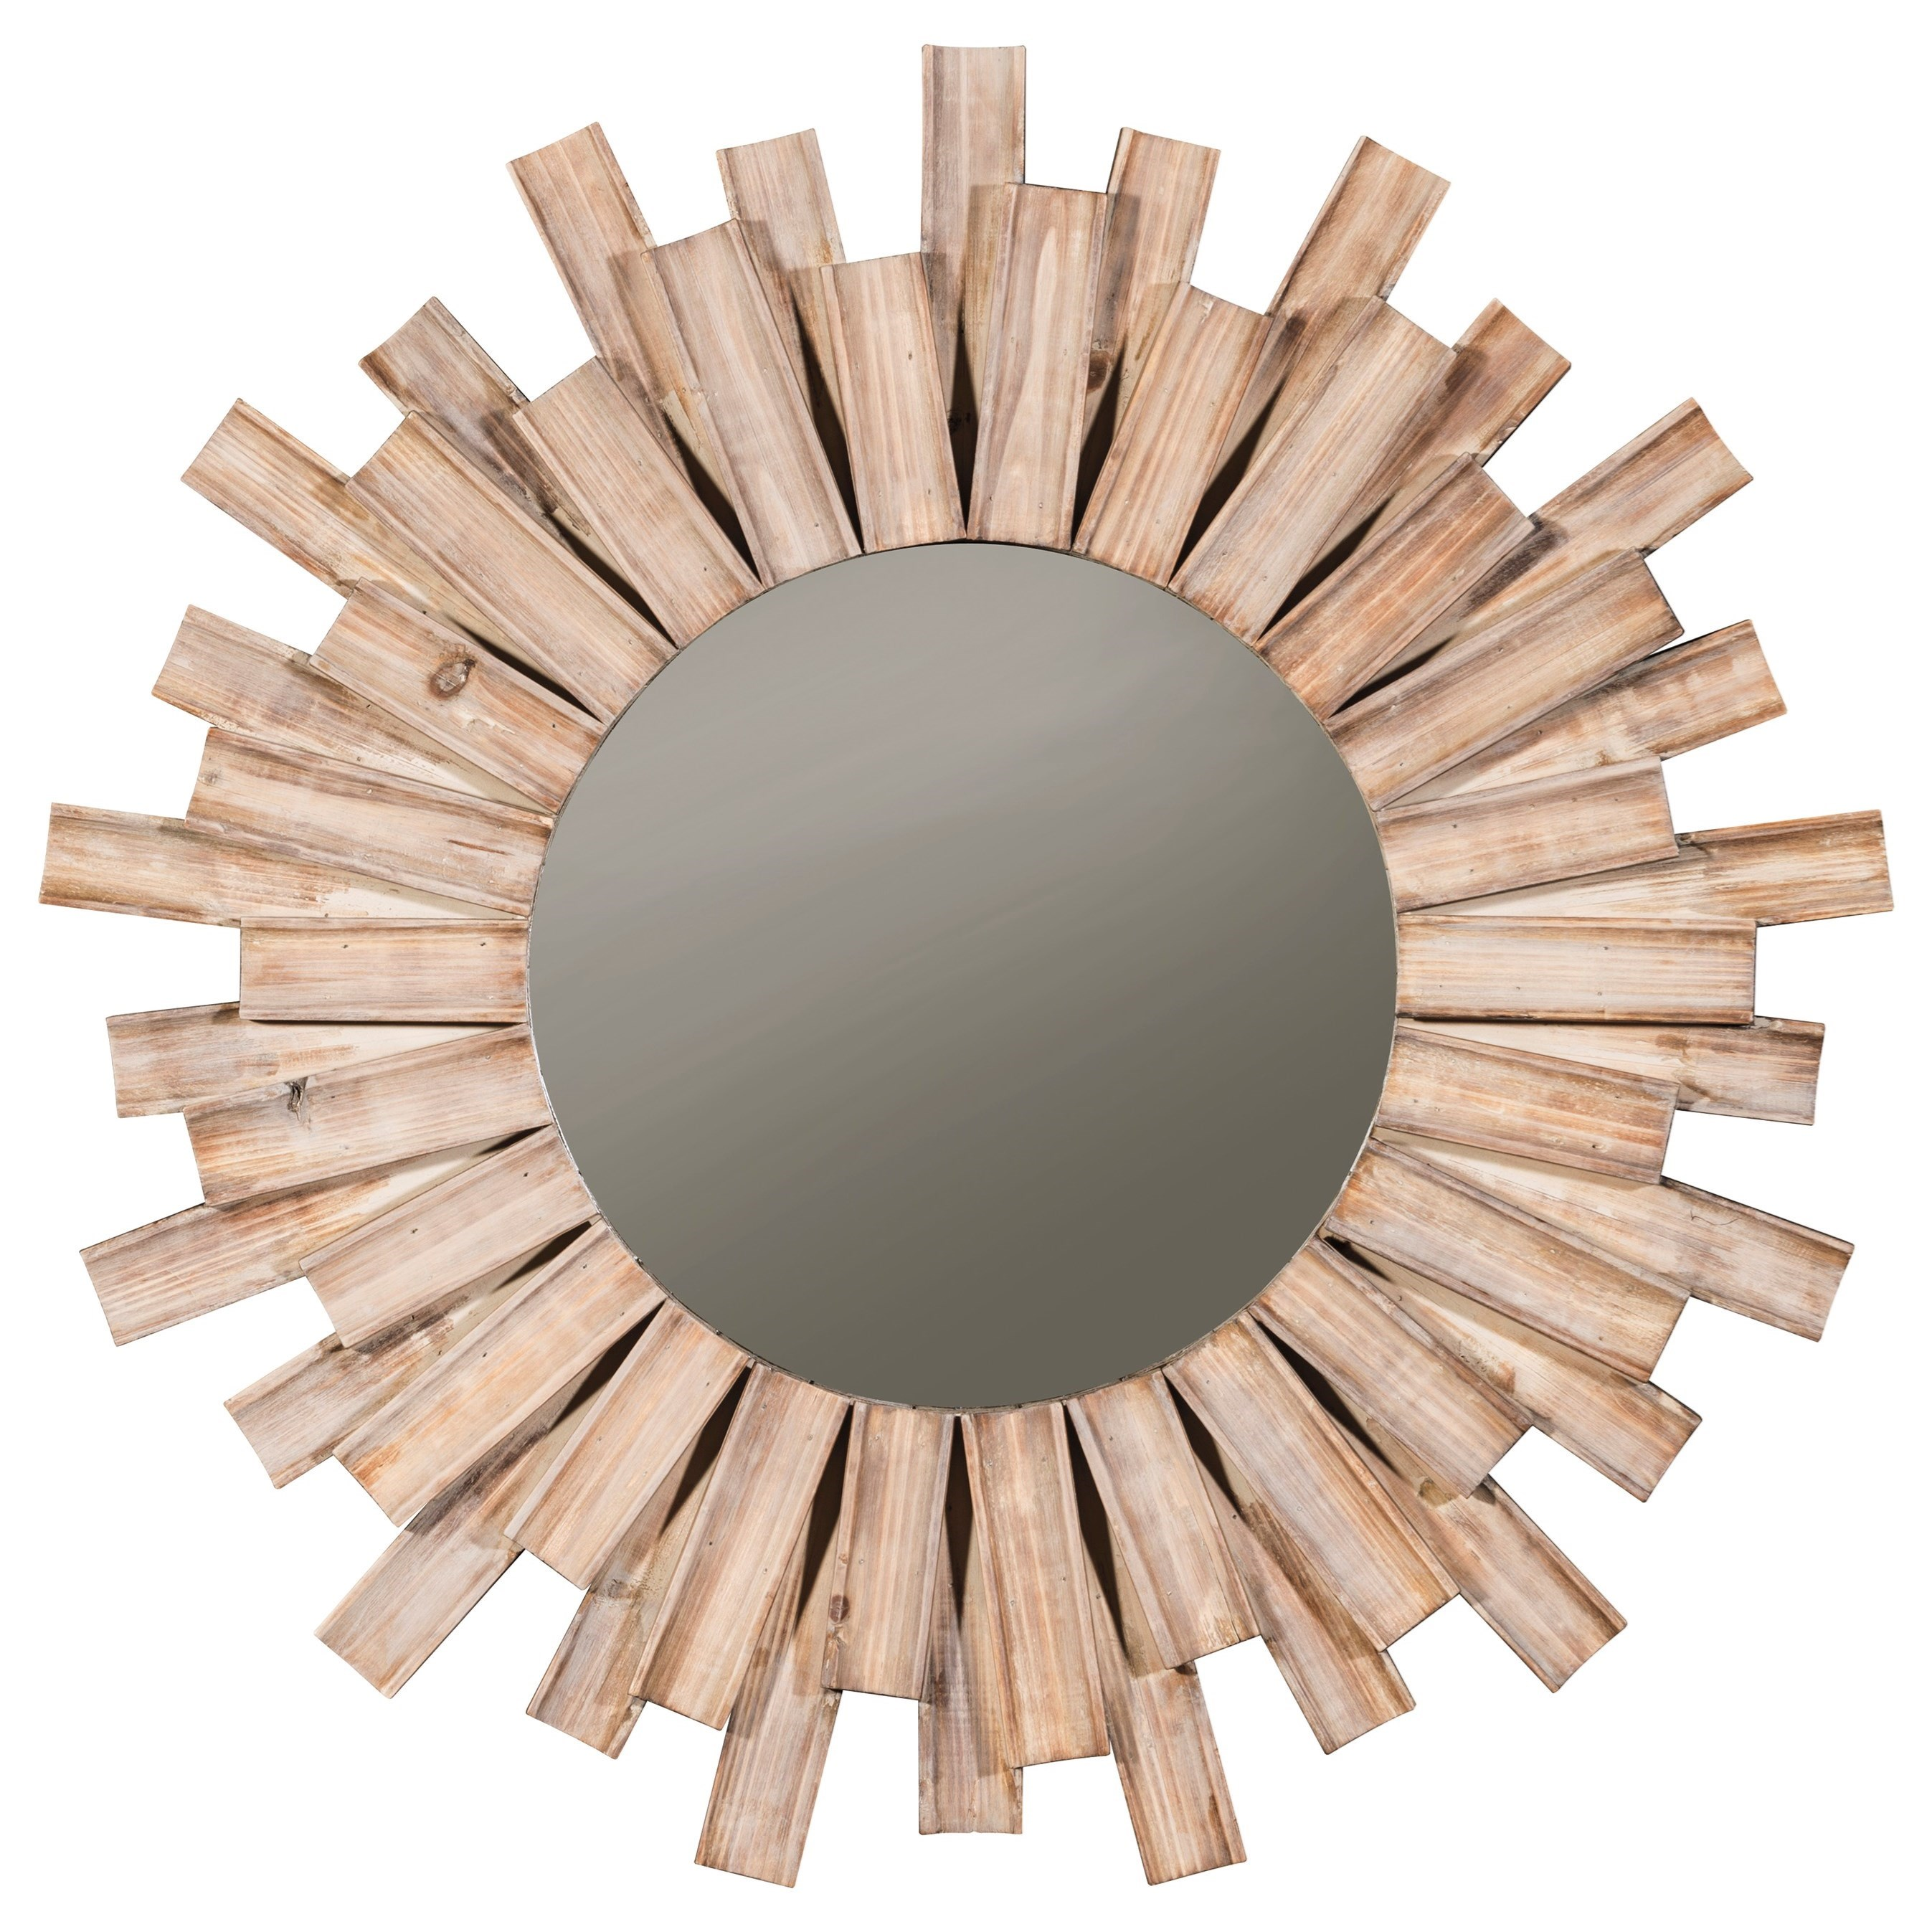 Accent Mirrors Donata Natural Accent Mirror by Signature Design at Fisher Home Furnishings